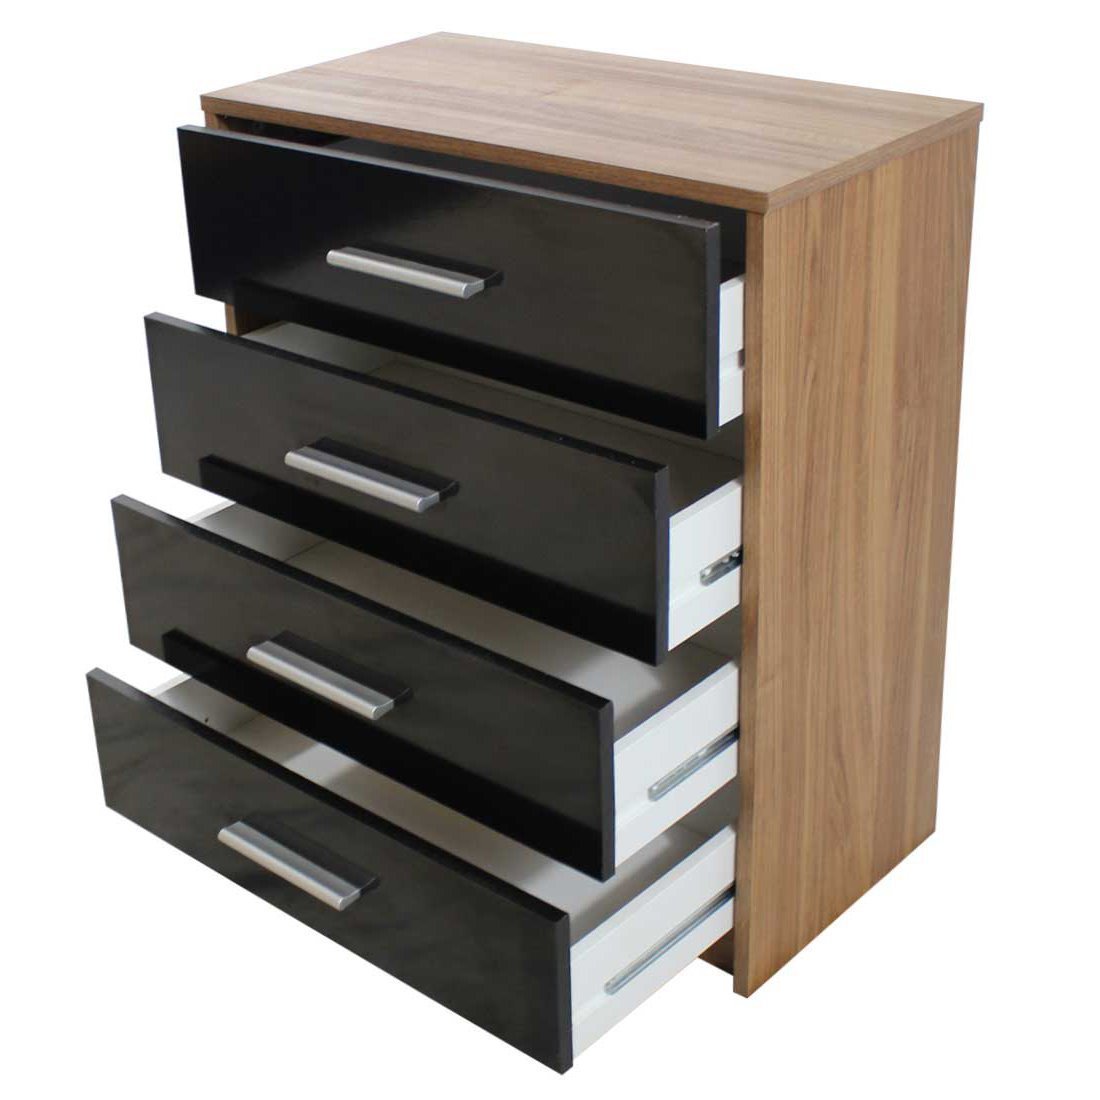 Devoted2home Glossop Bedroom Furniture With Chest Of 4 Drawers Wood